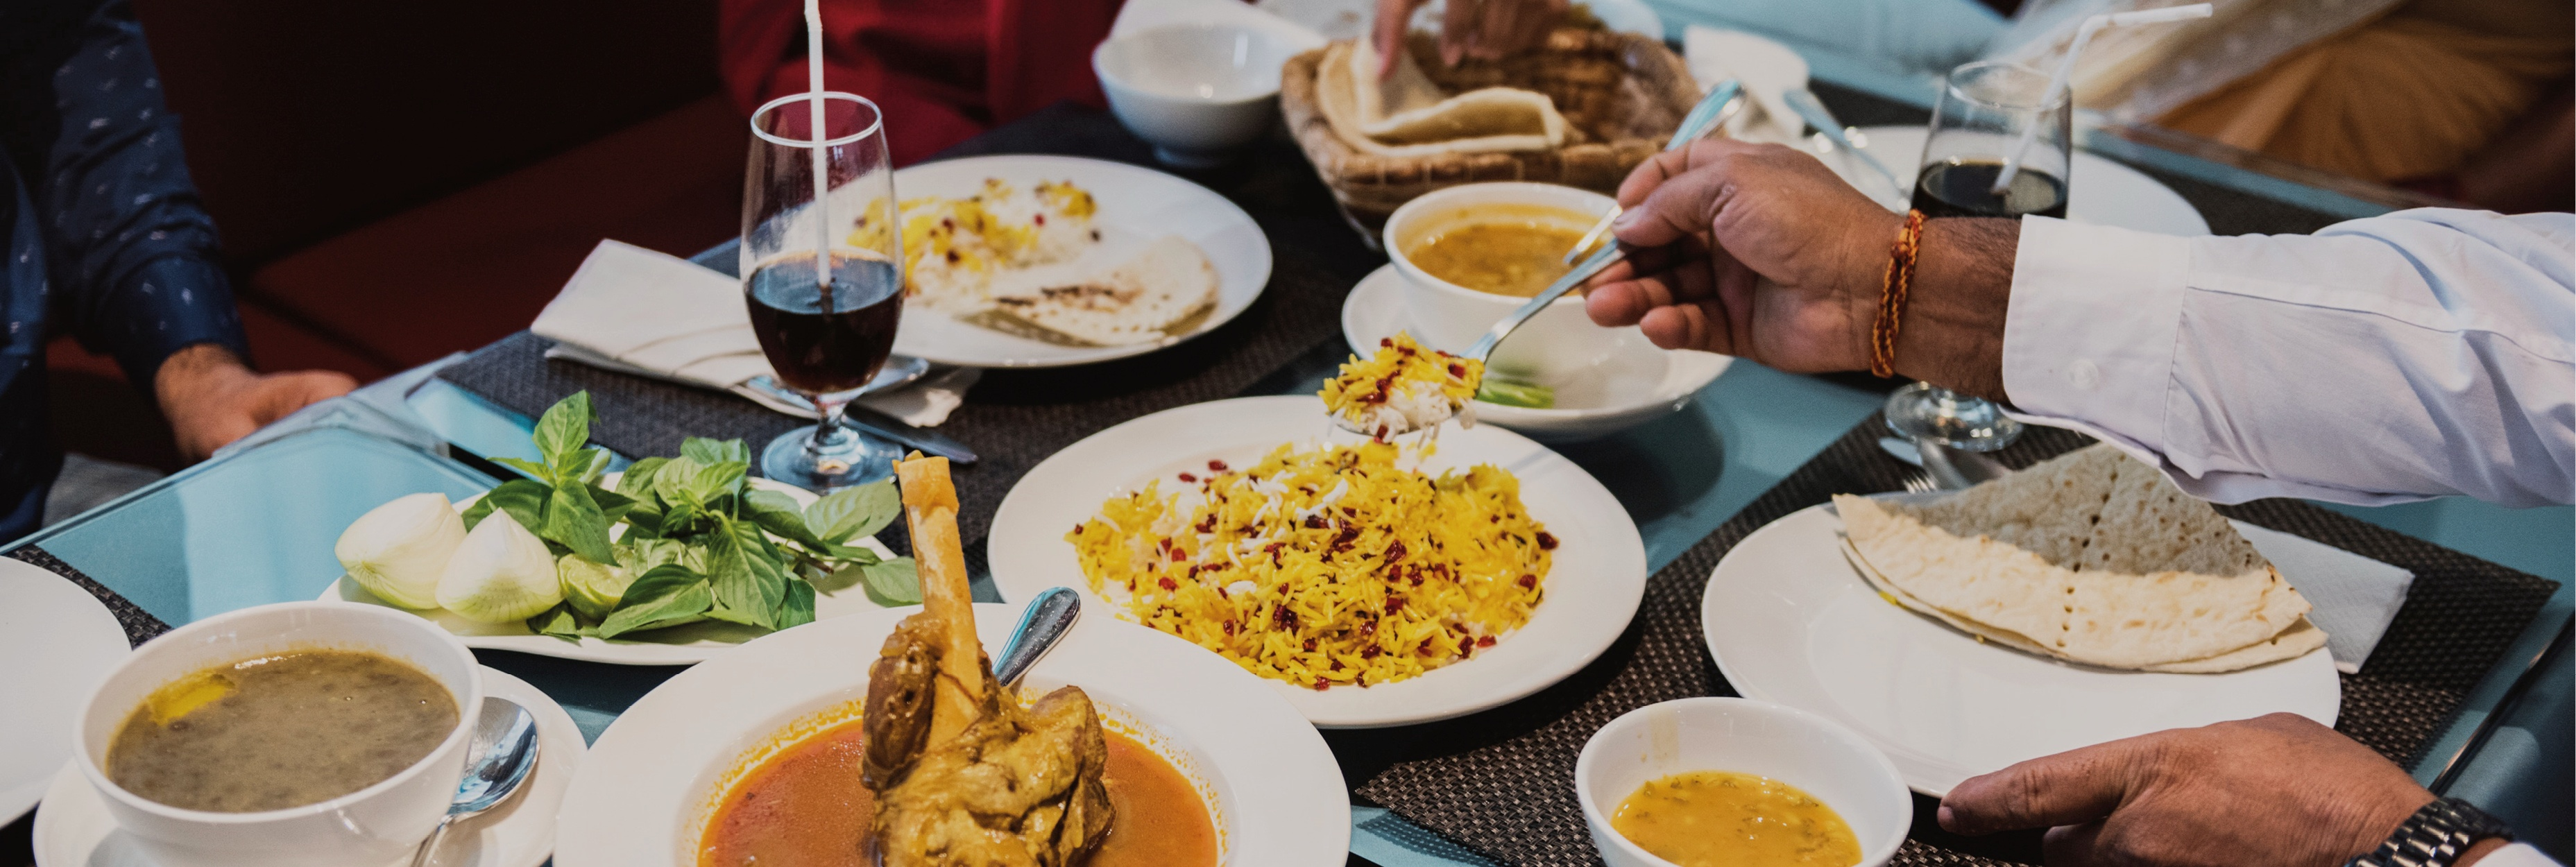 3 ways Dubai is planning to reduce food waste during Ramadan